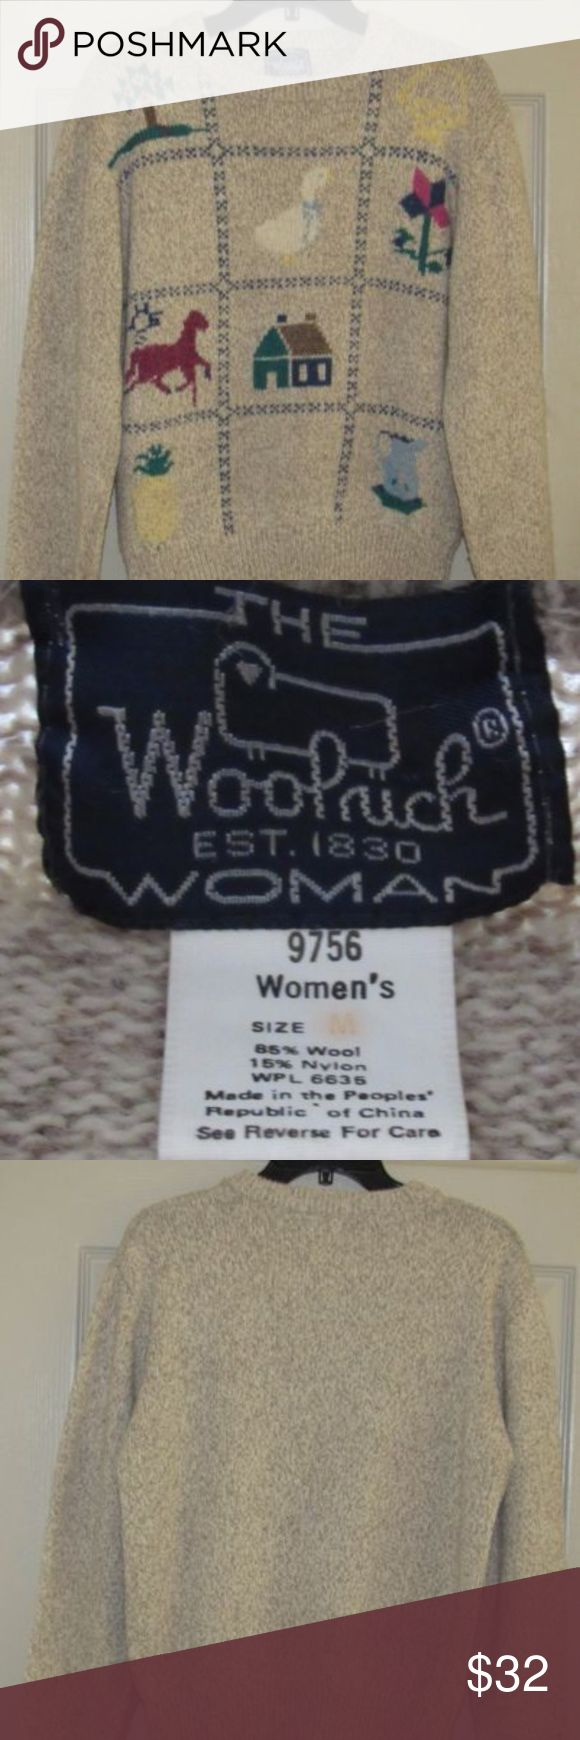 "Woolrich-Woman-Size-Medium-Crew-Neck-Sweater Woolrich Woman Size Medium Crew Neck Sweater Goose Horse Tree House 85% wool 15% nylon.  This is a long sleeved crew neck sweater. The design on the front is kind of like a cross stitch effect with blue as your boarders. There is a goose, house, horse, tree, flower,pitcher, pineapple and left shoulder area has a yellow that I cant make out.  length 22"" sleeve length 23.5"" chest 19.5"" flat across the front.  Smoke free home Woolrich Sweaters Crew…"